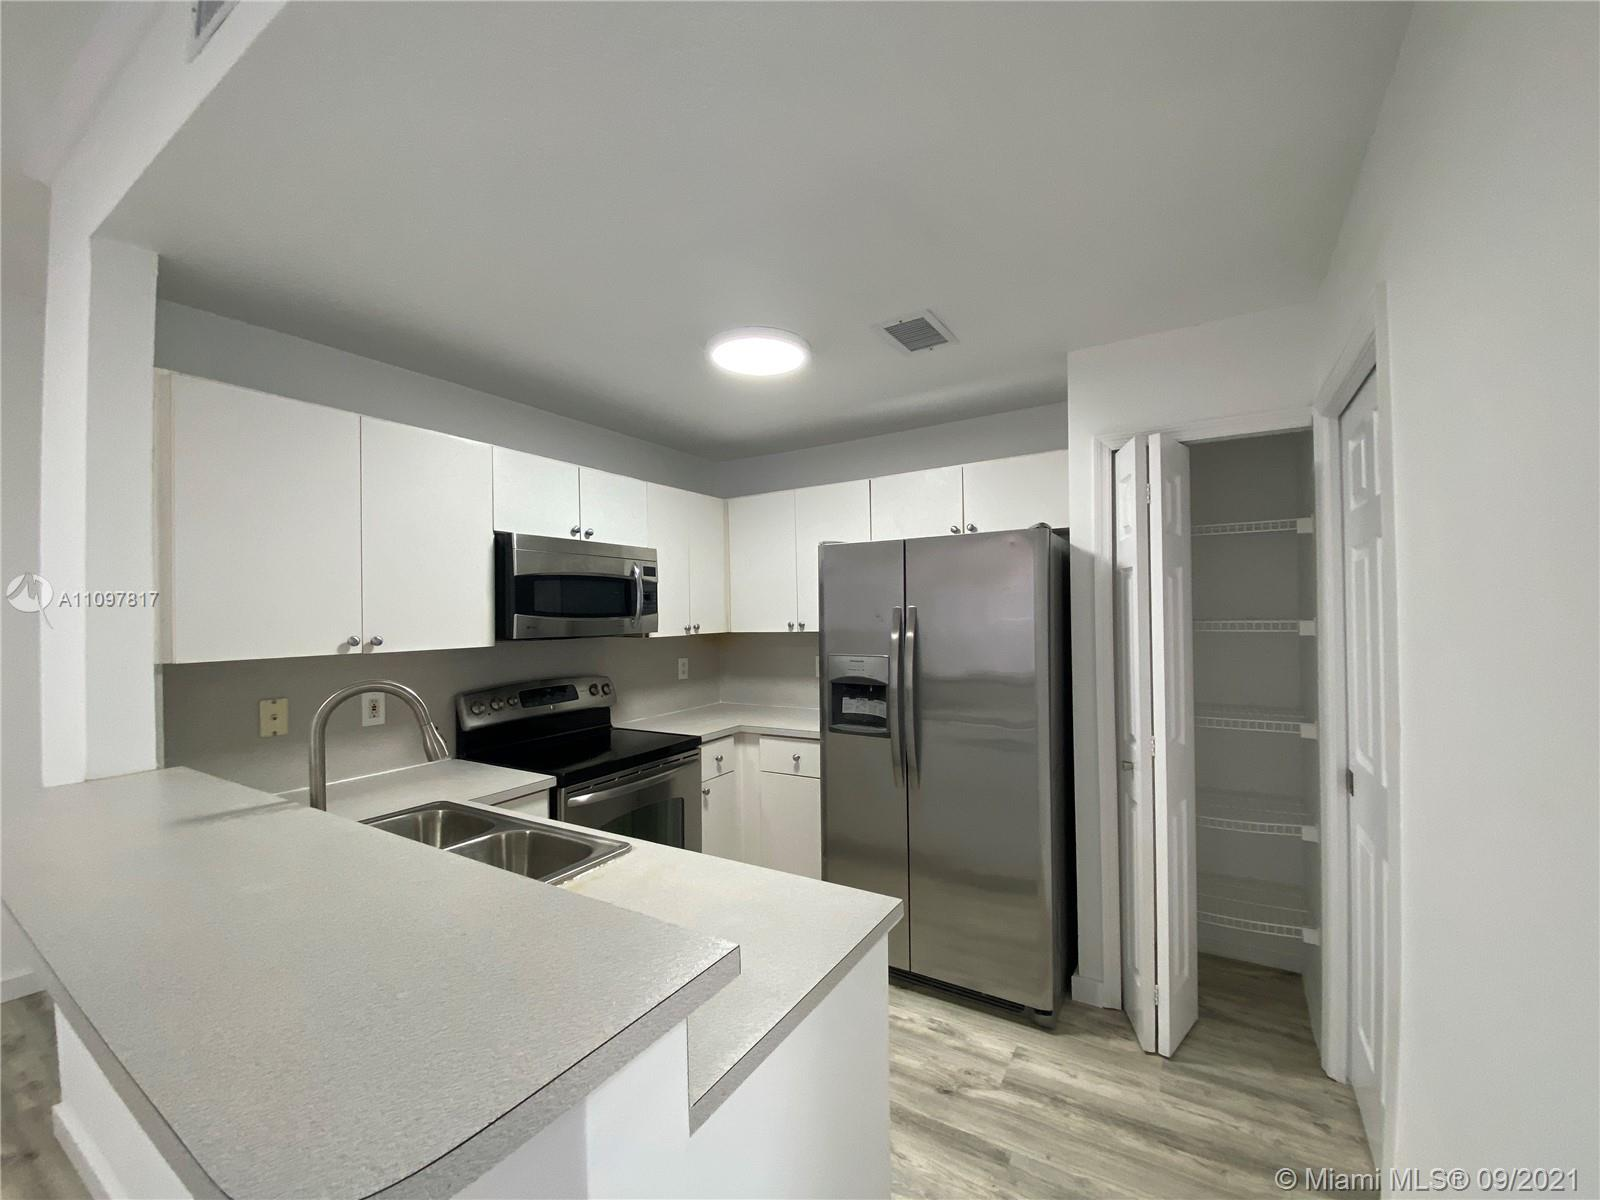 6202 NW 115th Pl #325 For Sale A11097817, FL